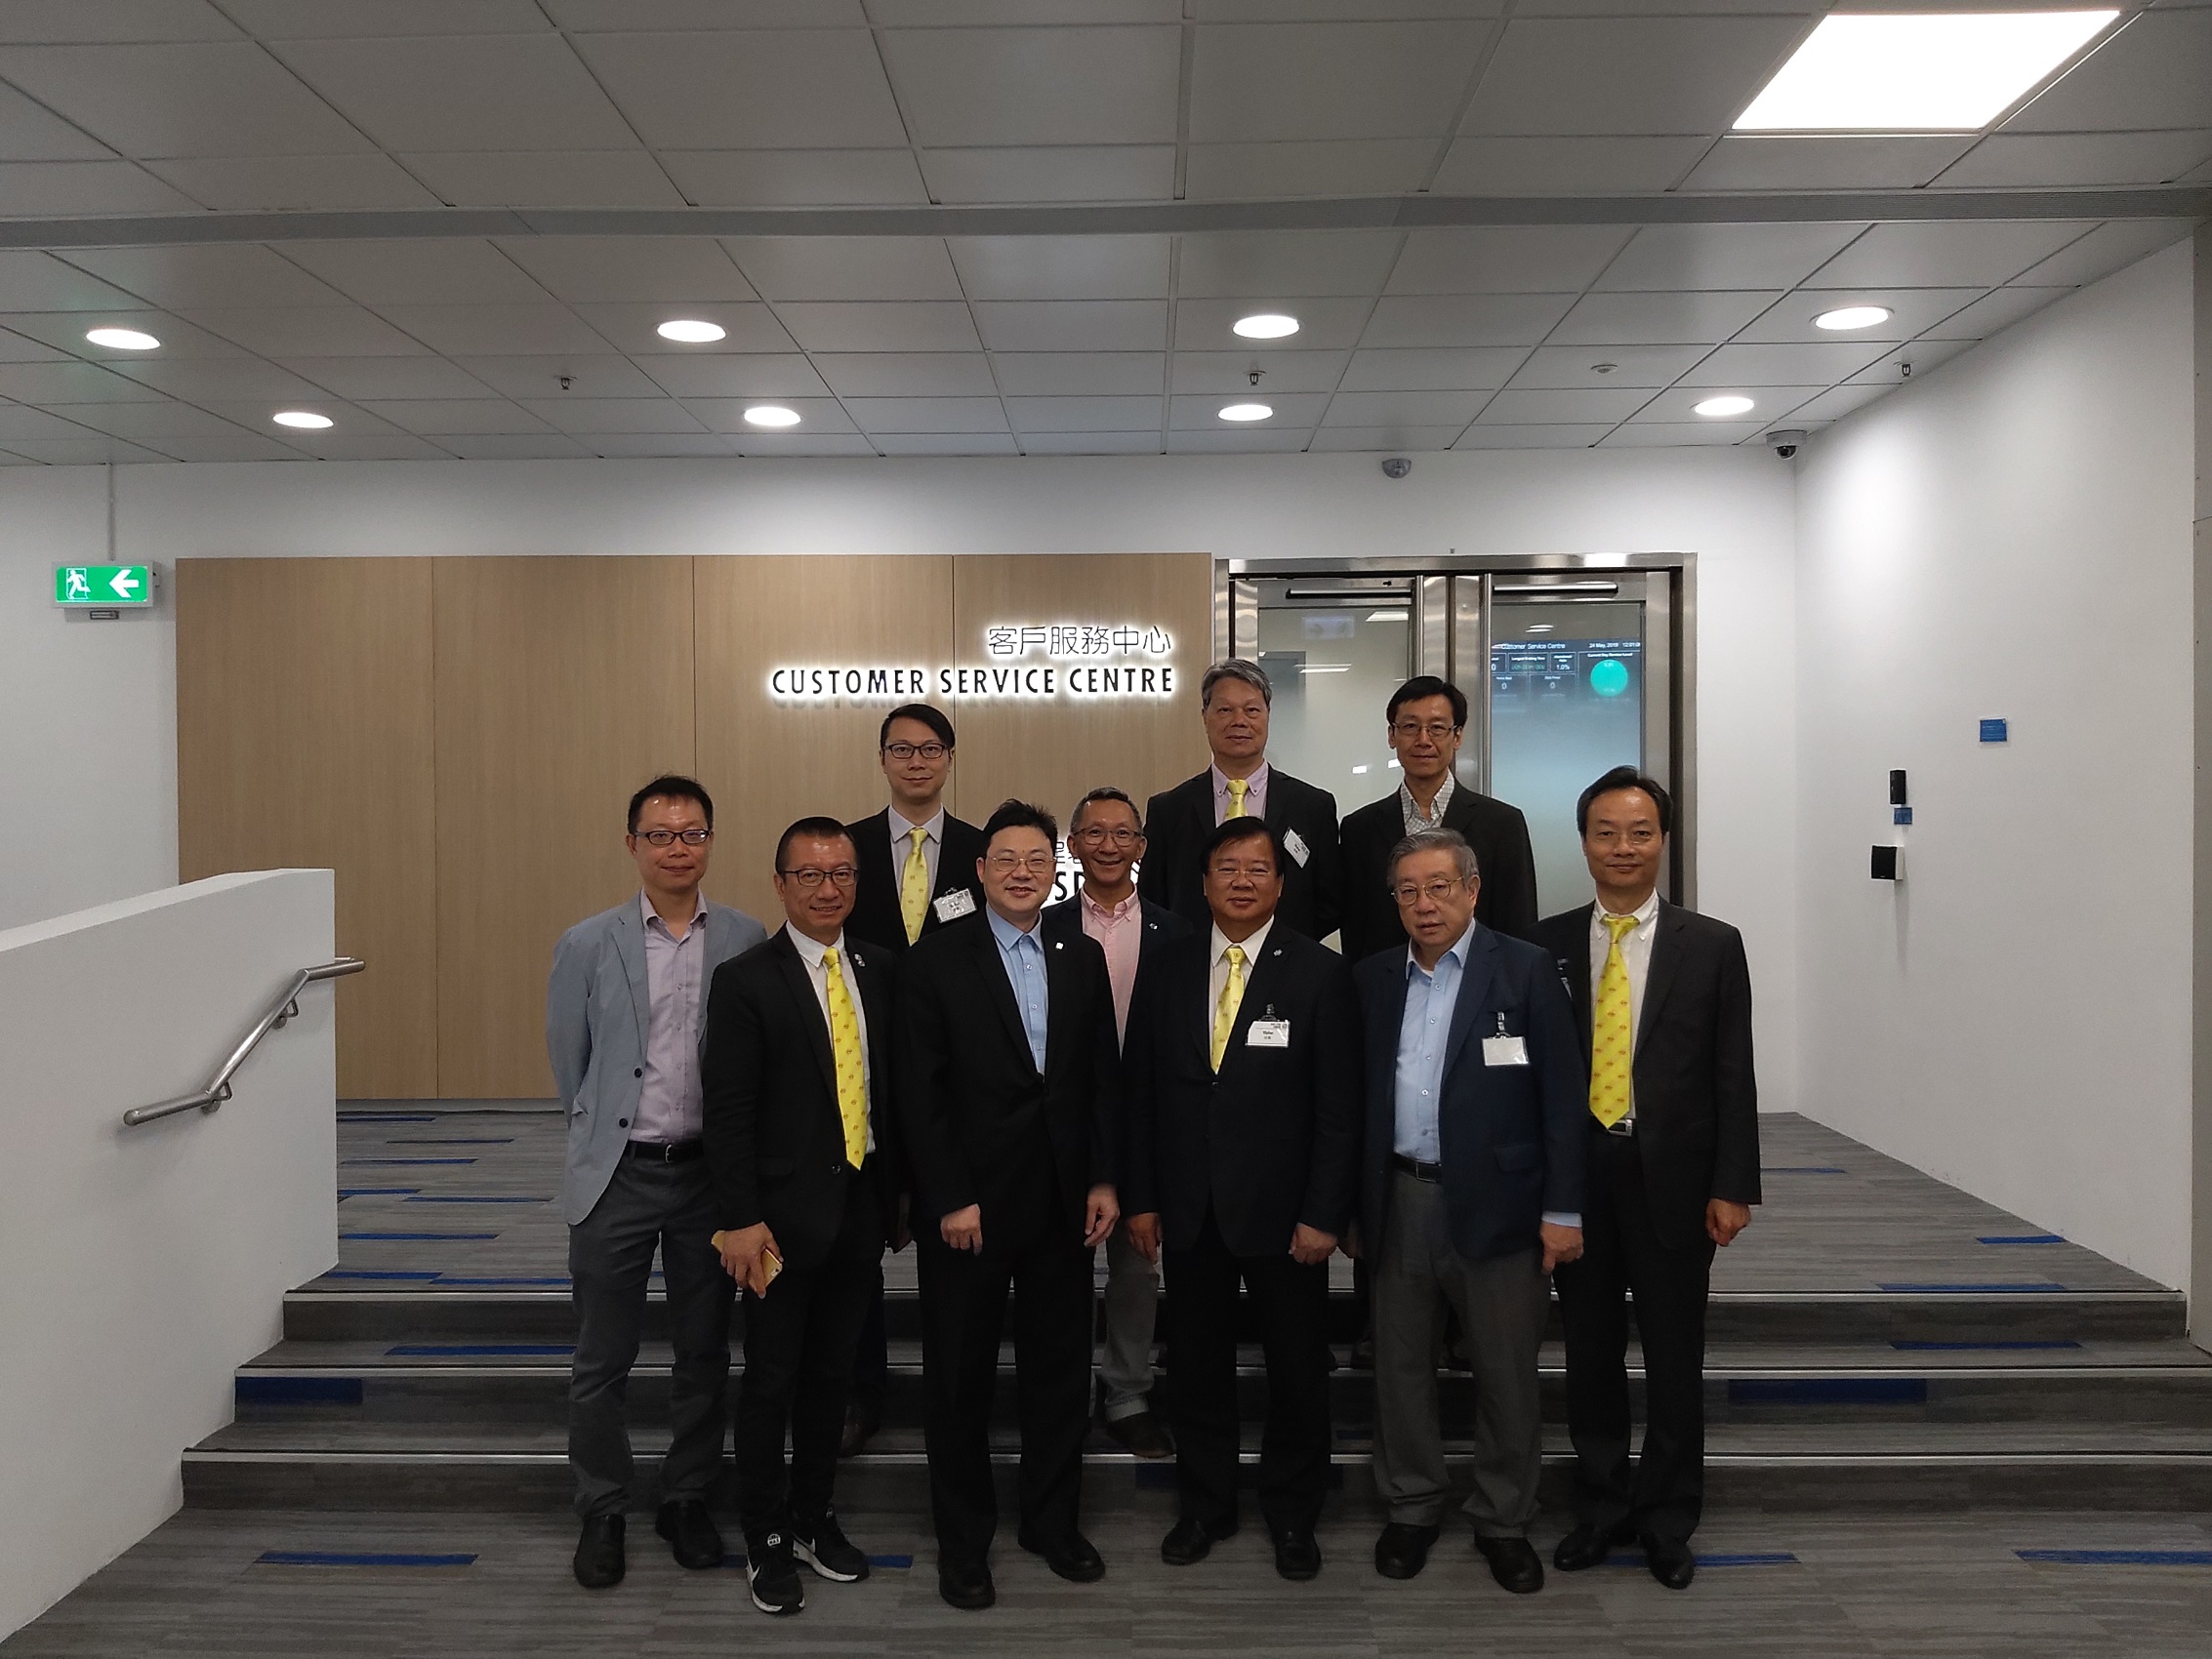 24 May 2019 – Mr. Lee Yuen Fat, Chairman for Hong Kong Federation of Innovative Technologies and Manufacturing Industries visited to EMSD